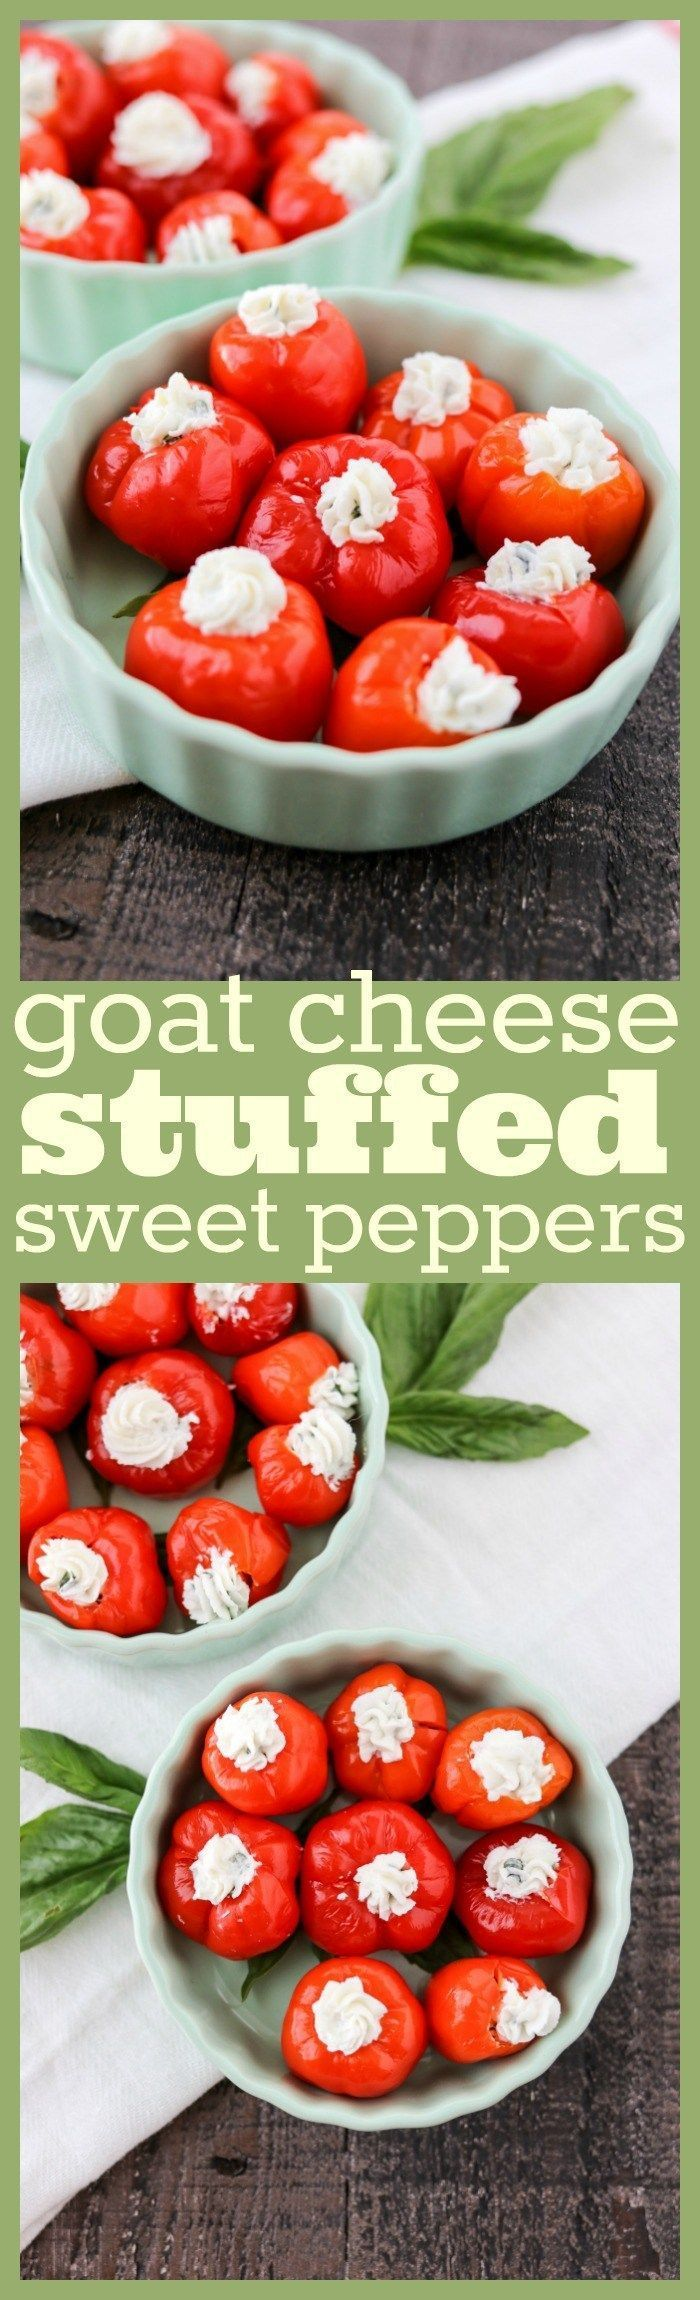 Cheese Stuffed Sweet Peppers  Creamy goat cheese is mixed with fresh basil  Goat Cheese Stuffed Sweet Peppers  Creamy goat cheese is mixed with fresh basil  Goat Cheese S...